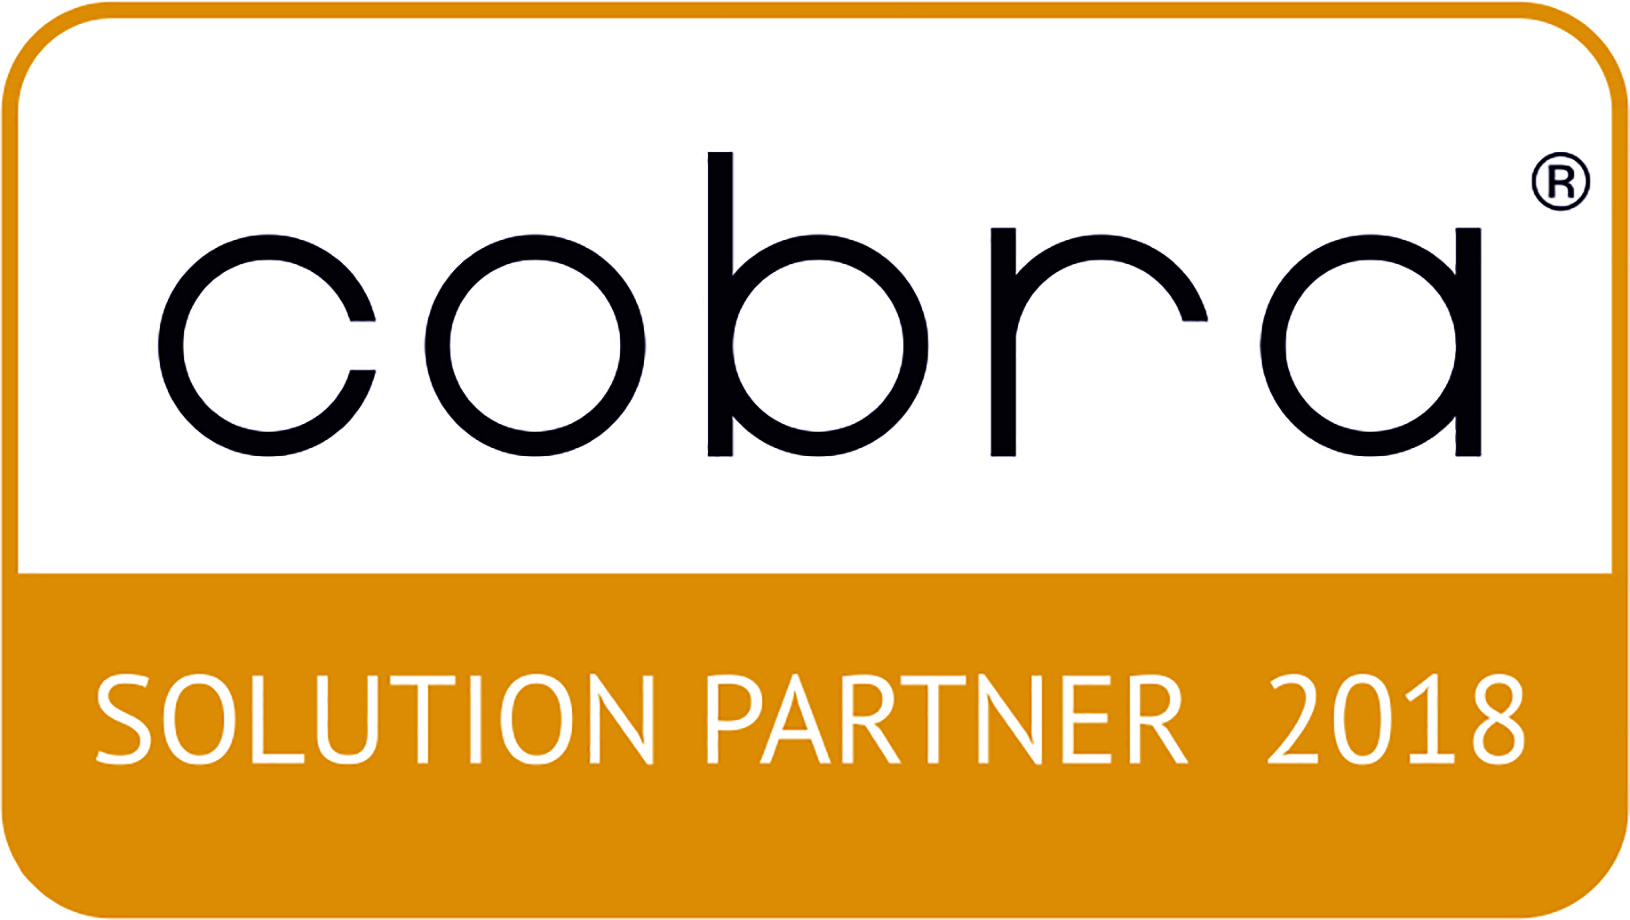 cobra SolutionPartner 2016